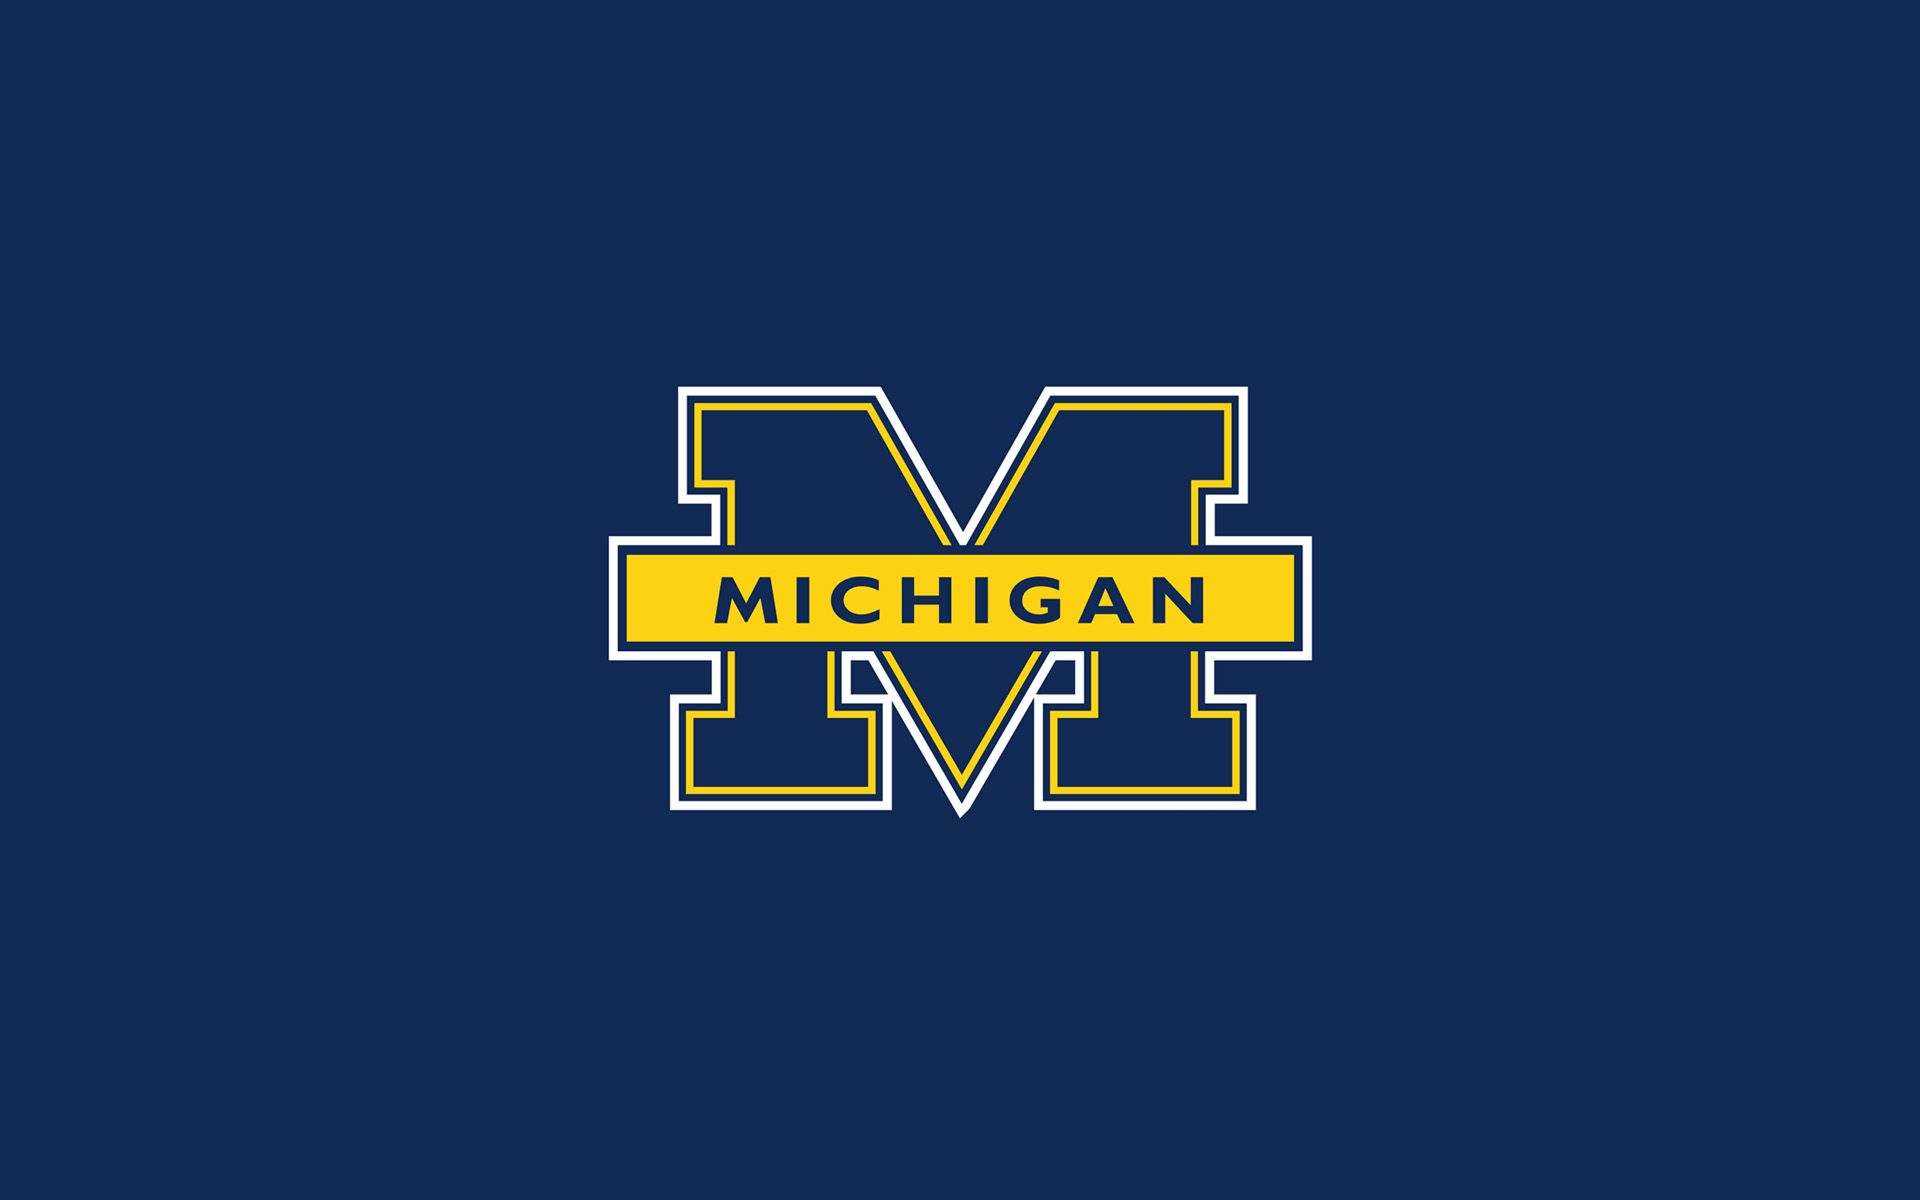 Michigan Wolverines Wallpaper 1 Michigan Wolverines Michigan Wolverines